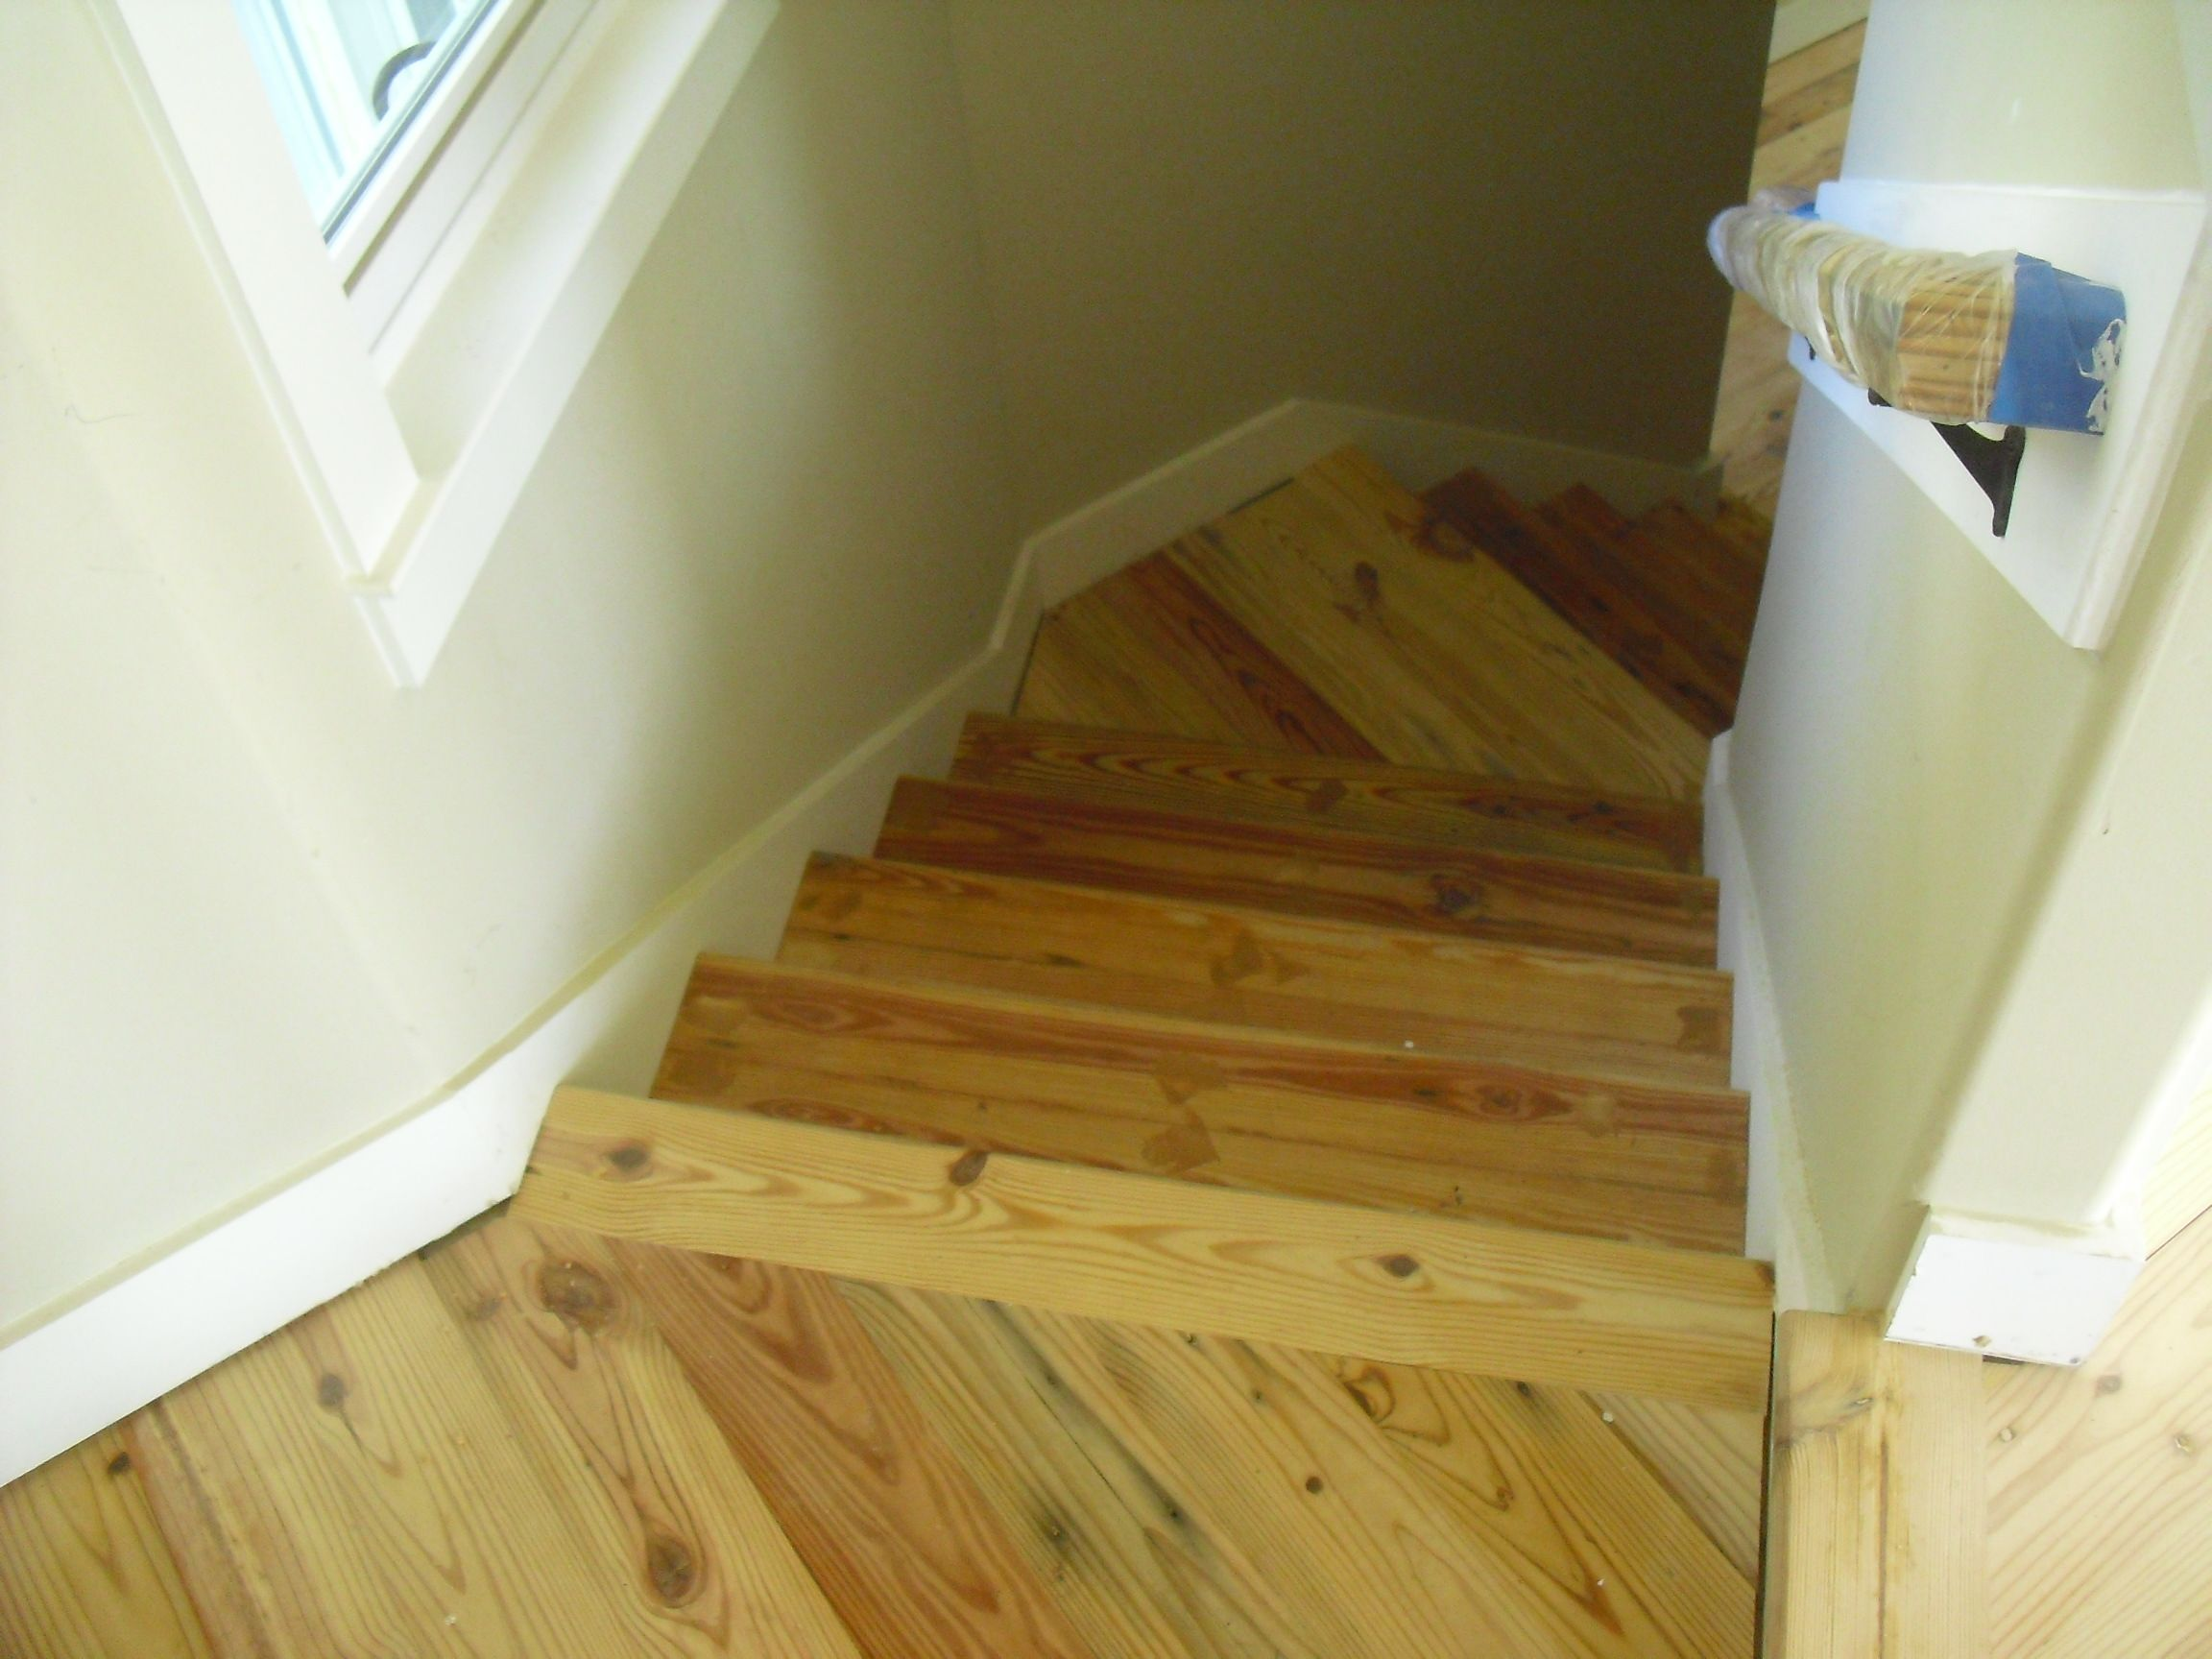 Stair Treads  Antique Heart Pine  Www.OldGrowthRiverwood.com